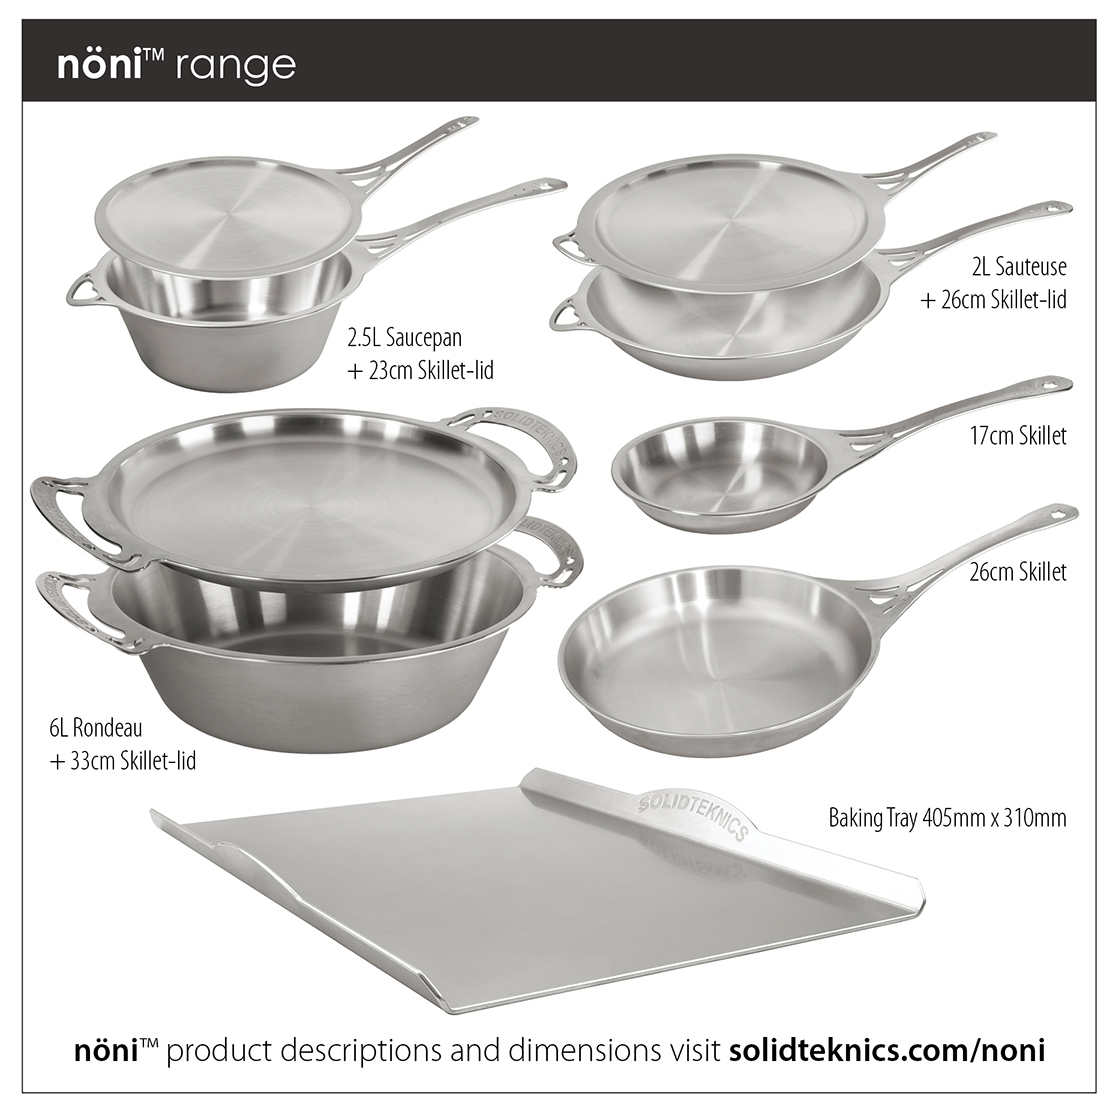 nöni™ Ferritic Stainless Steel Care Guide -    CLICK HERE